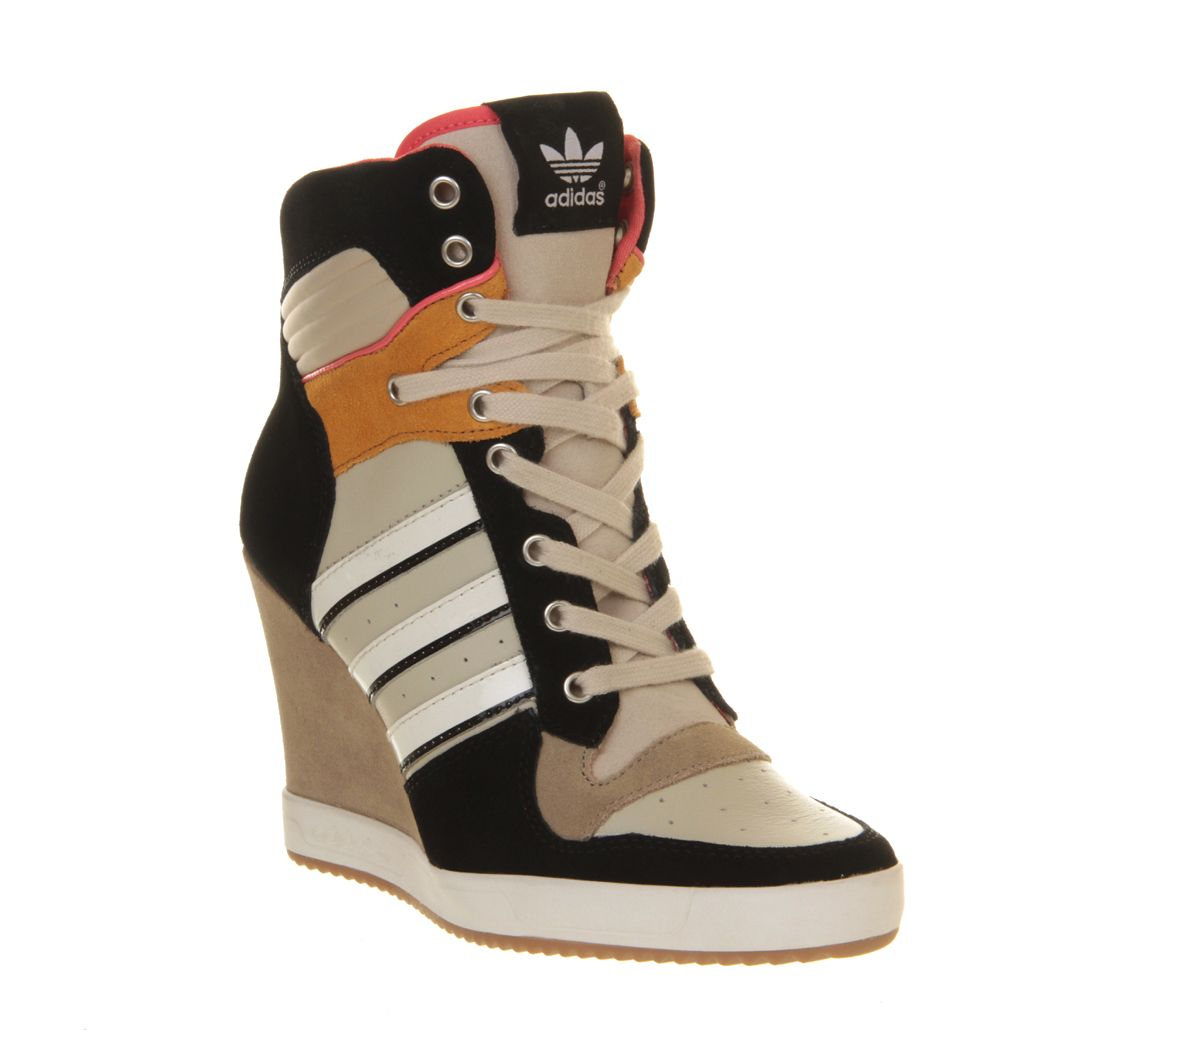 7c9c0ecbc2eb adidas wedge trainer - Google Search